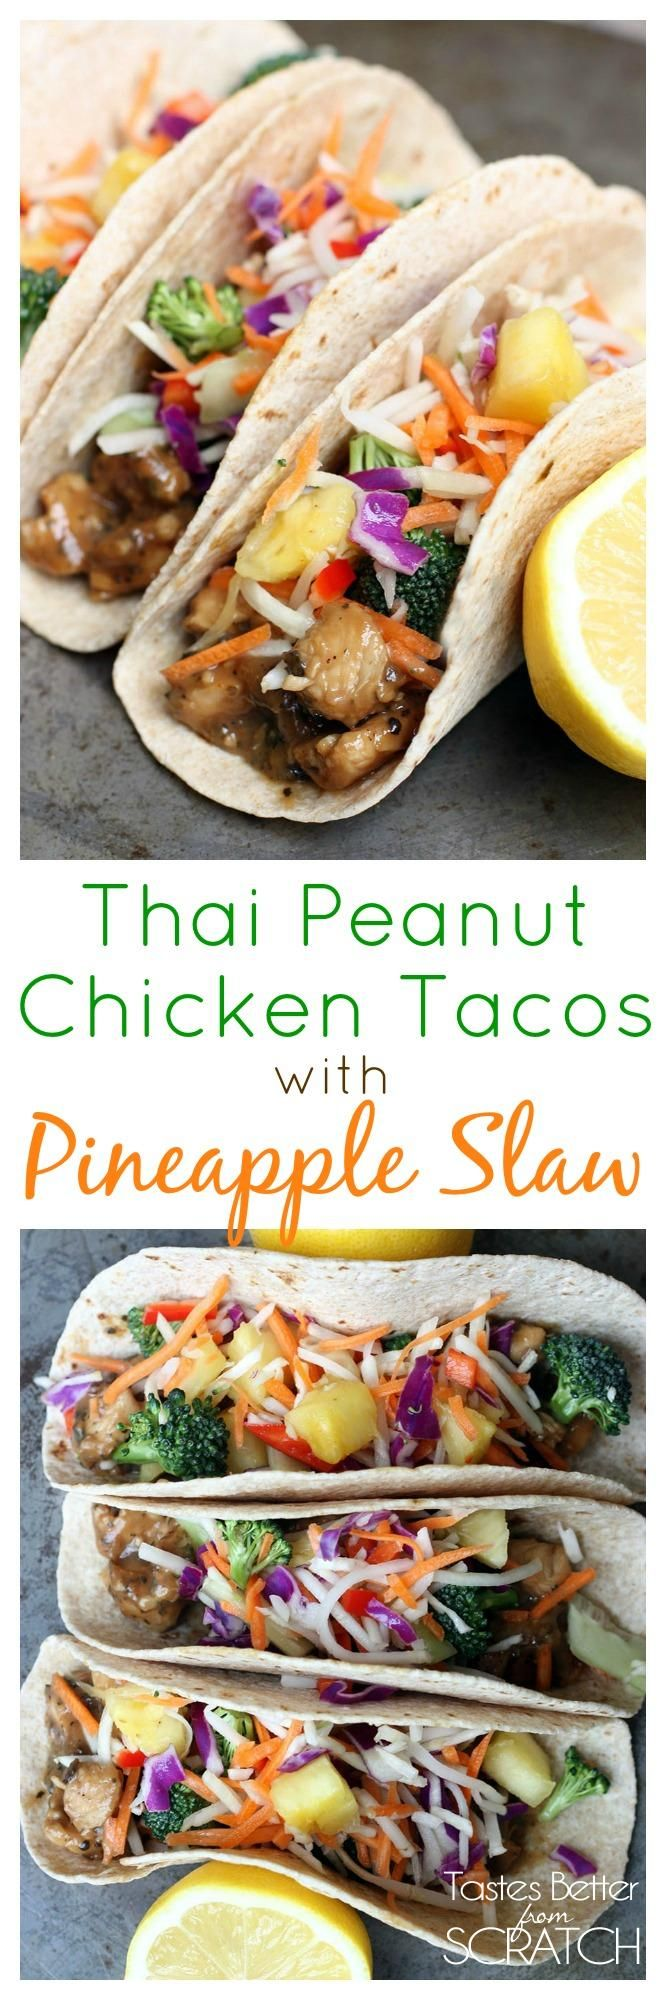 Thai Peanut Chicken Tacos with Pineapple Slaw